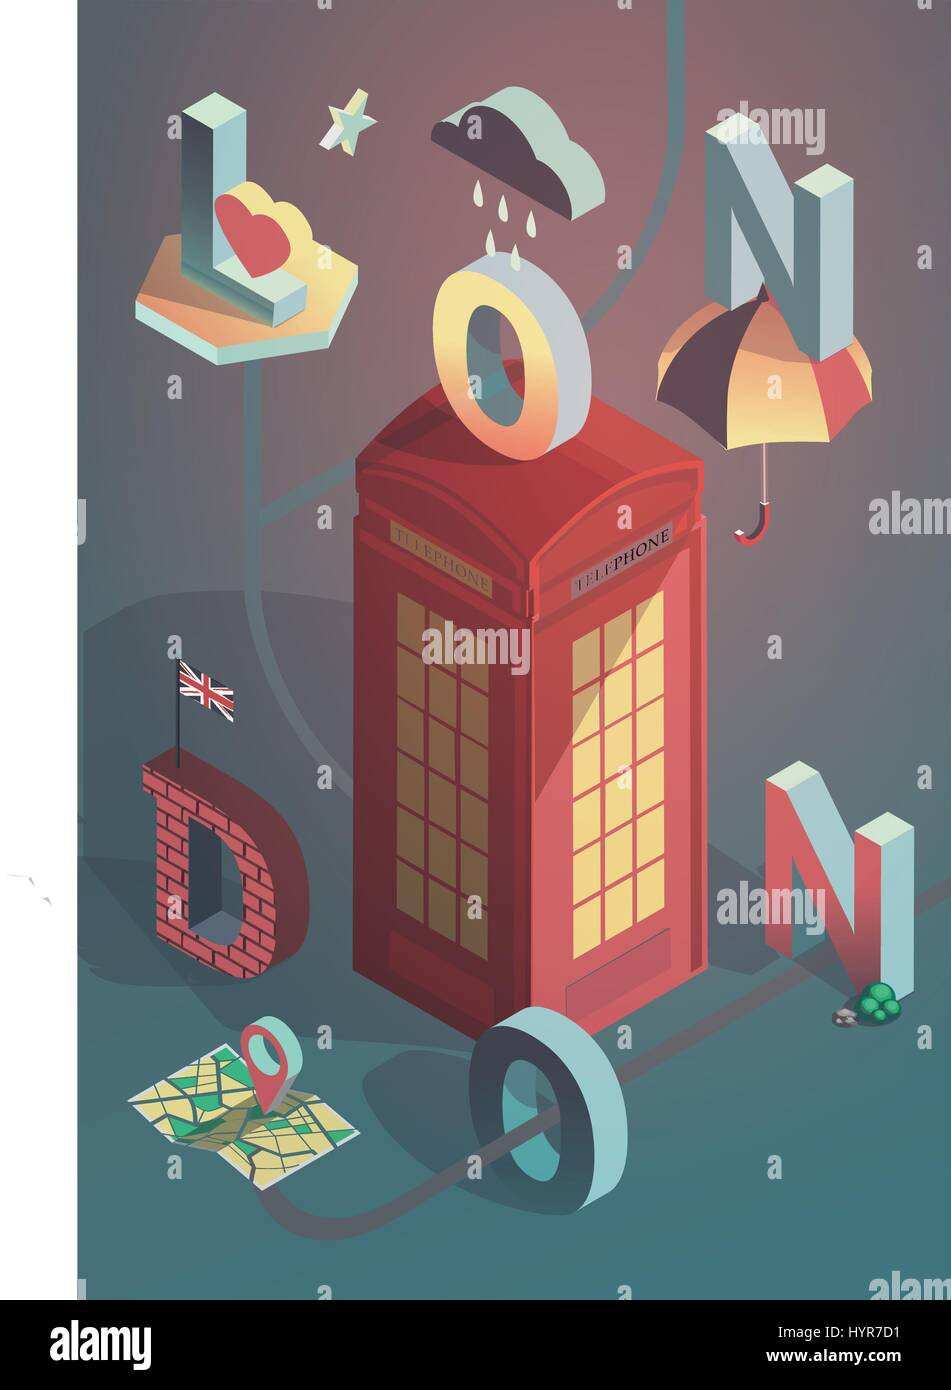 Poster design london -  3d Isometric Vector London City Poster Design Stock Photo